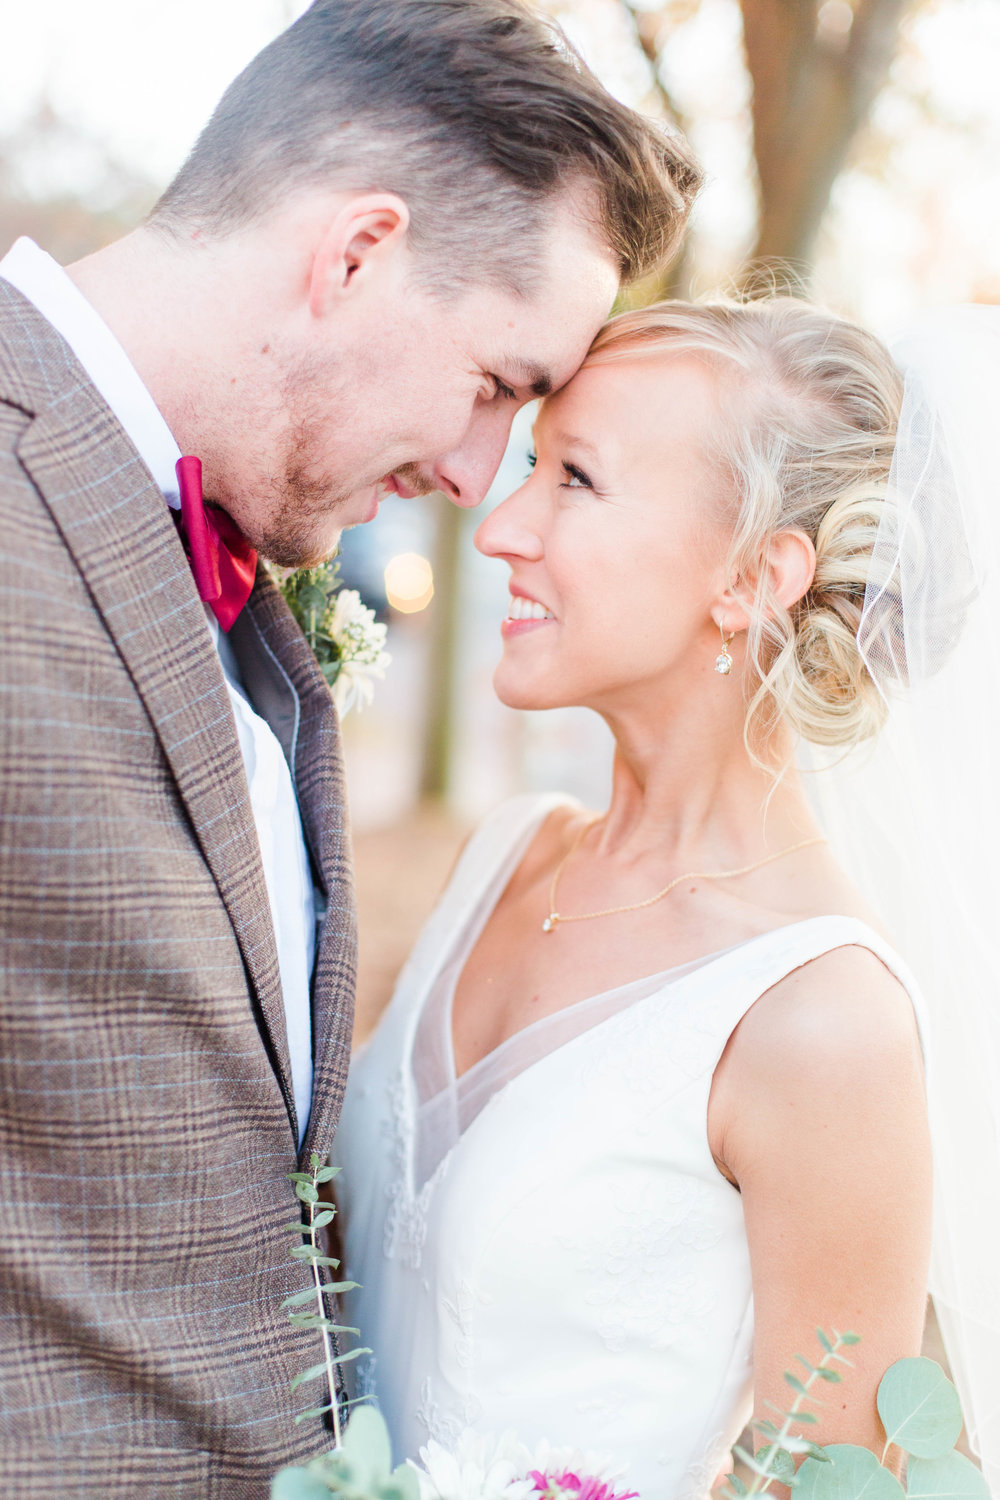 Featured: Chris & Solveig